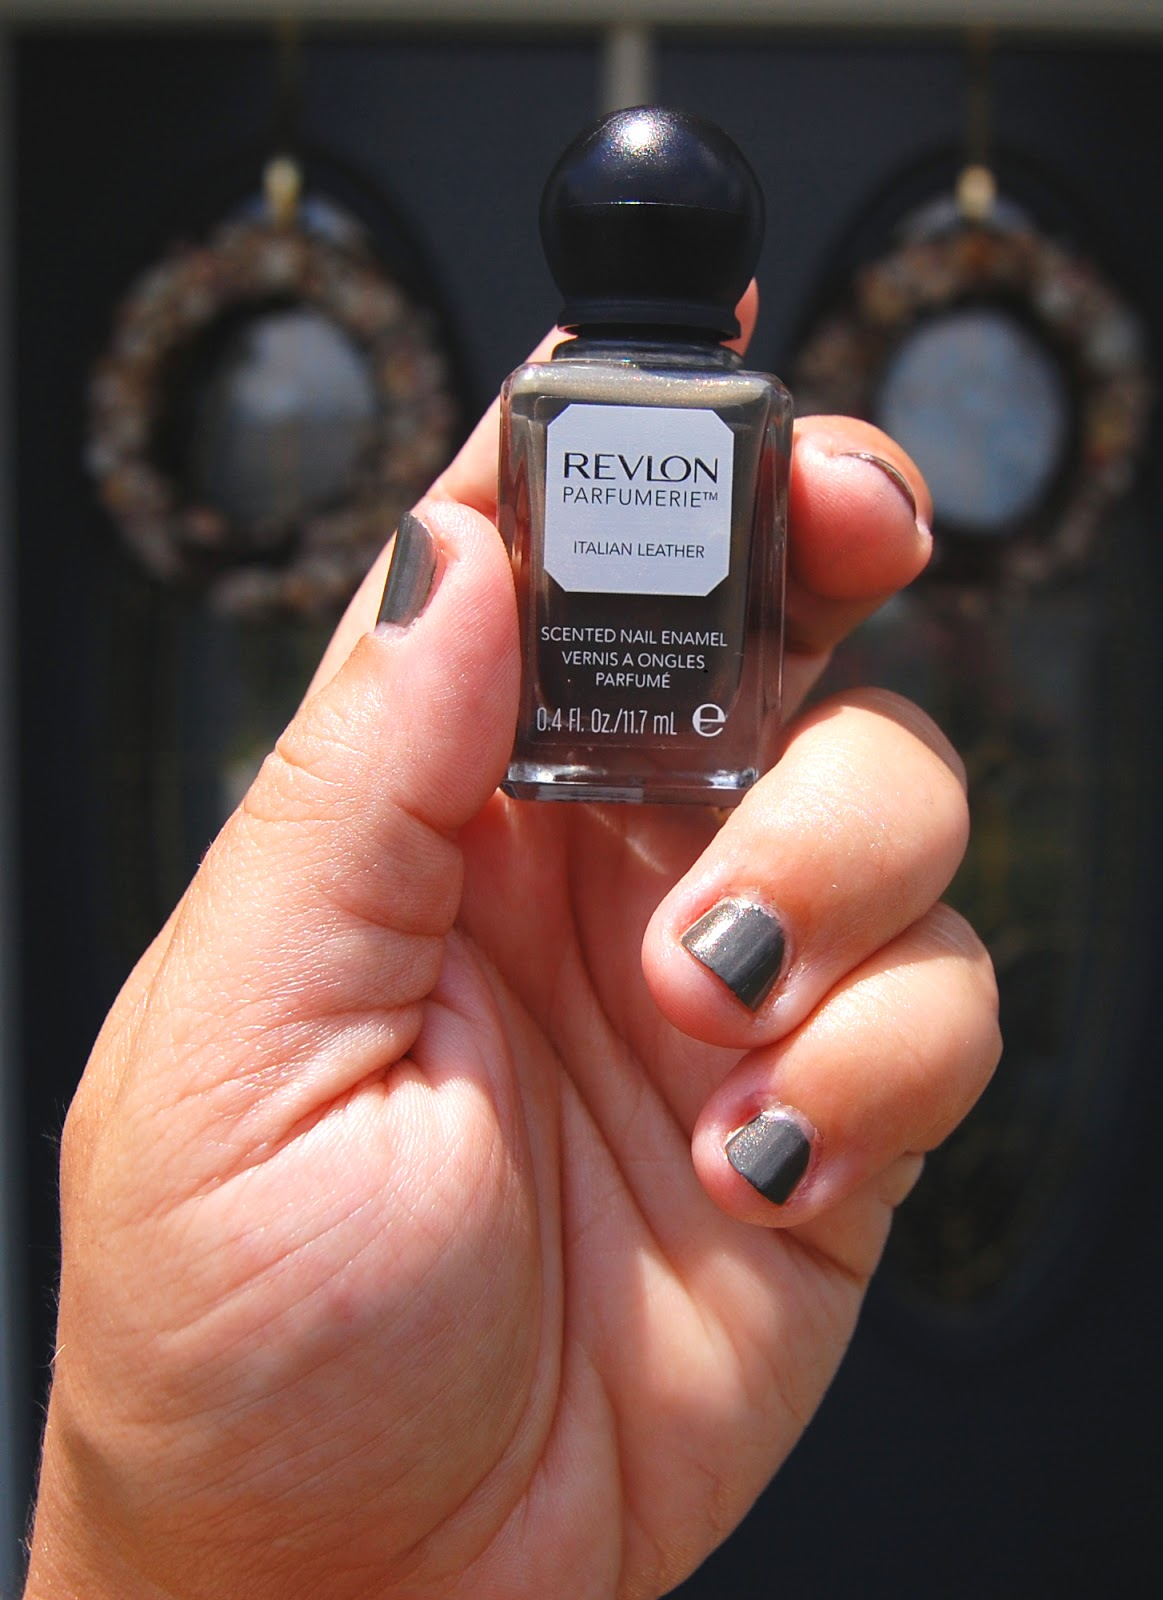 The Redolent Mermaid: Revlon Parfumerie Scented Nail Enamel... and a ...